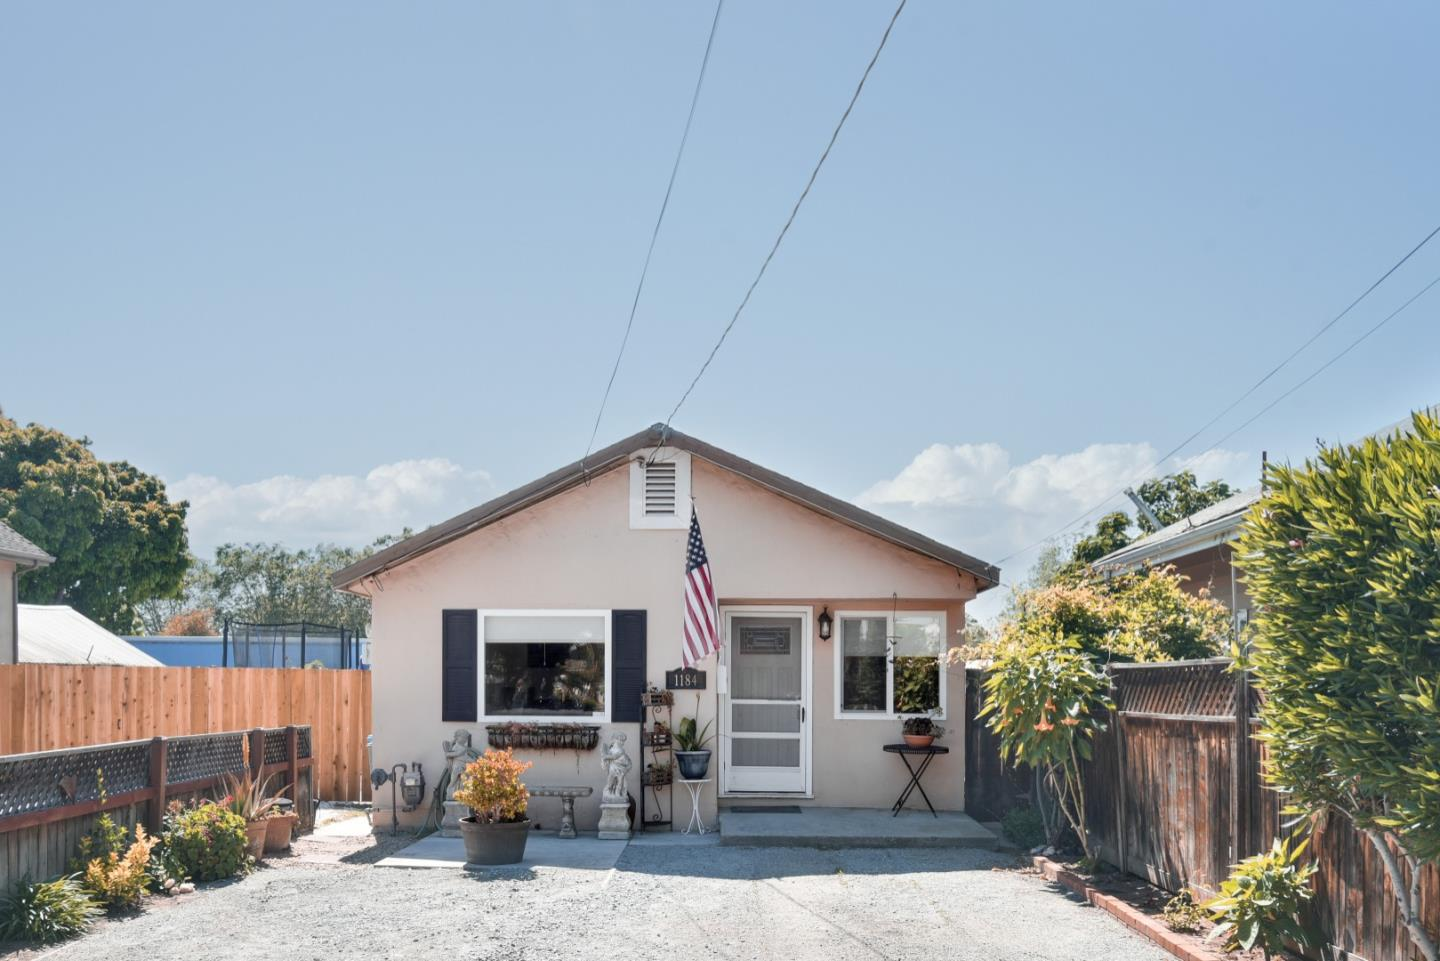 Detail Gallery Image 1 of 20 For 1184 San Benito St, Hollister, CA 95023 - 3 Beds | 1 Baths